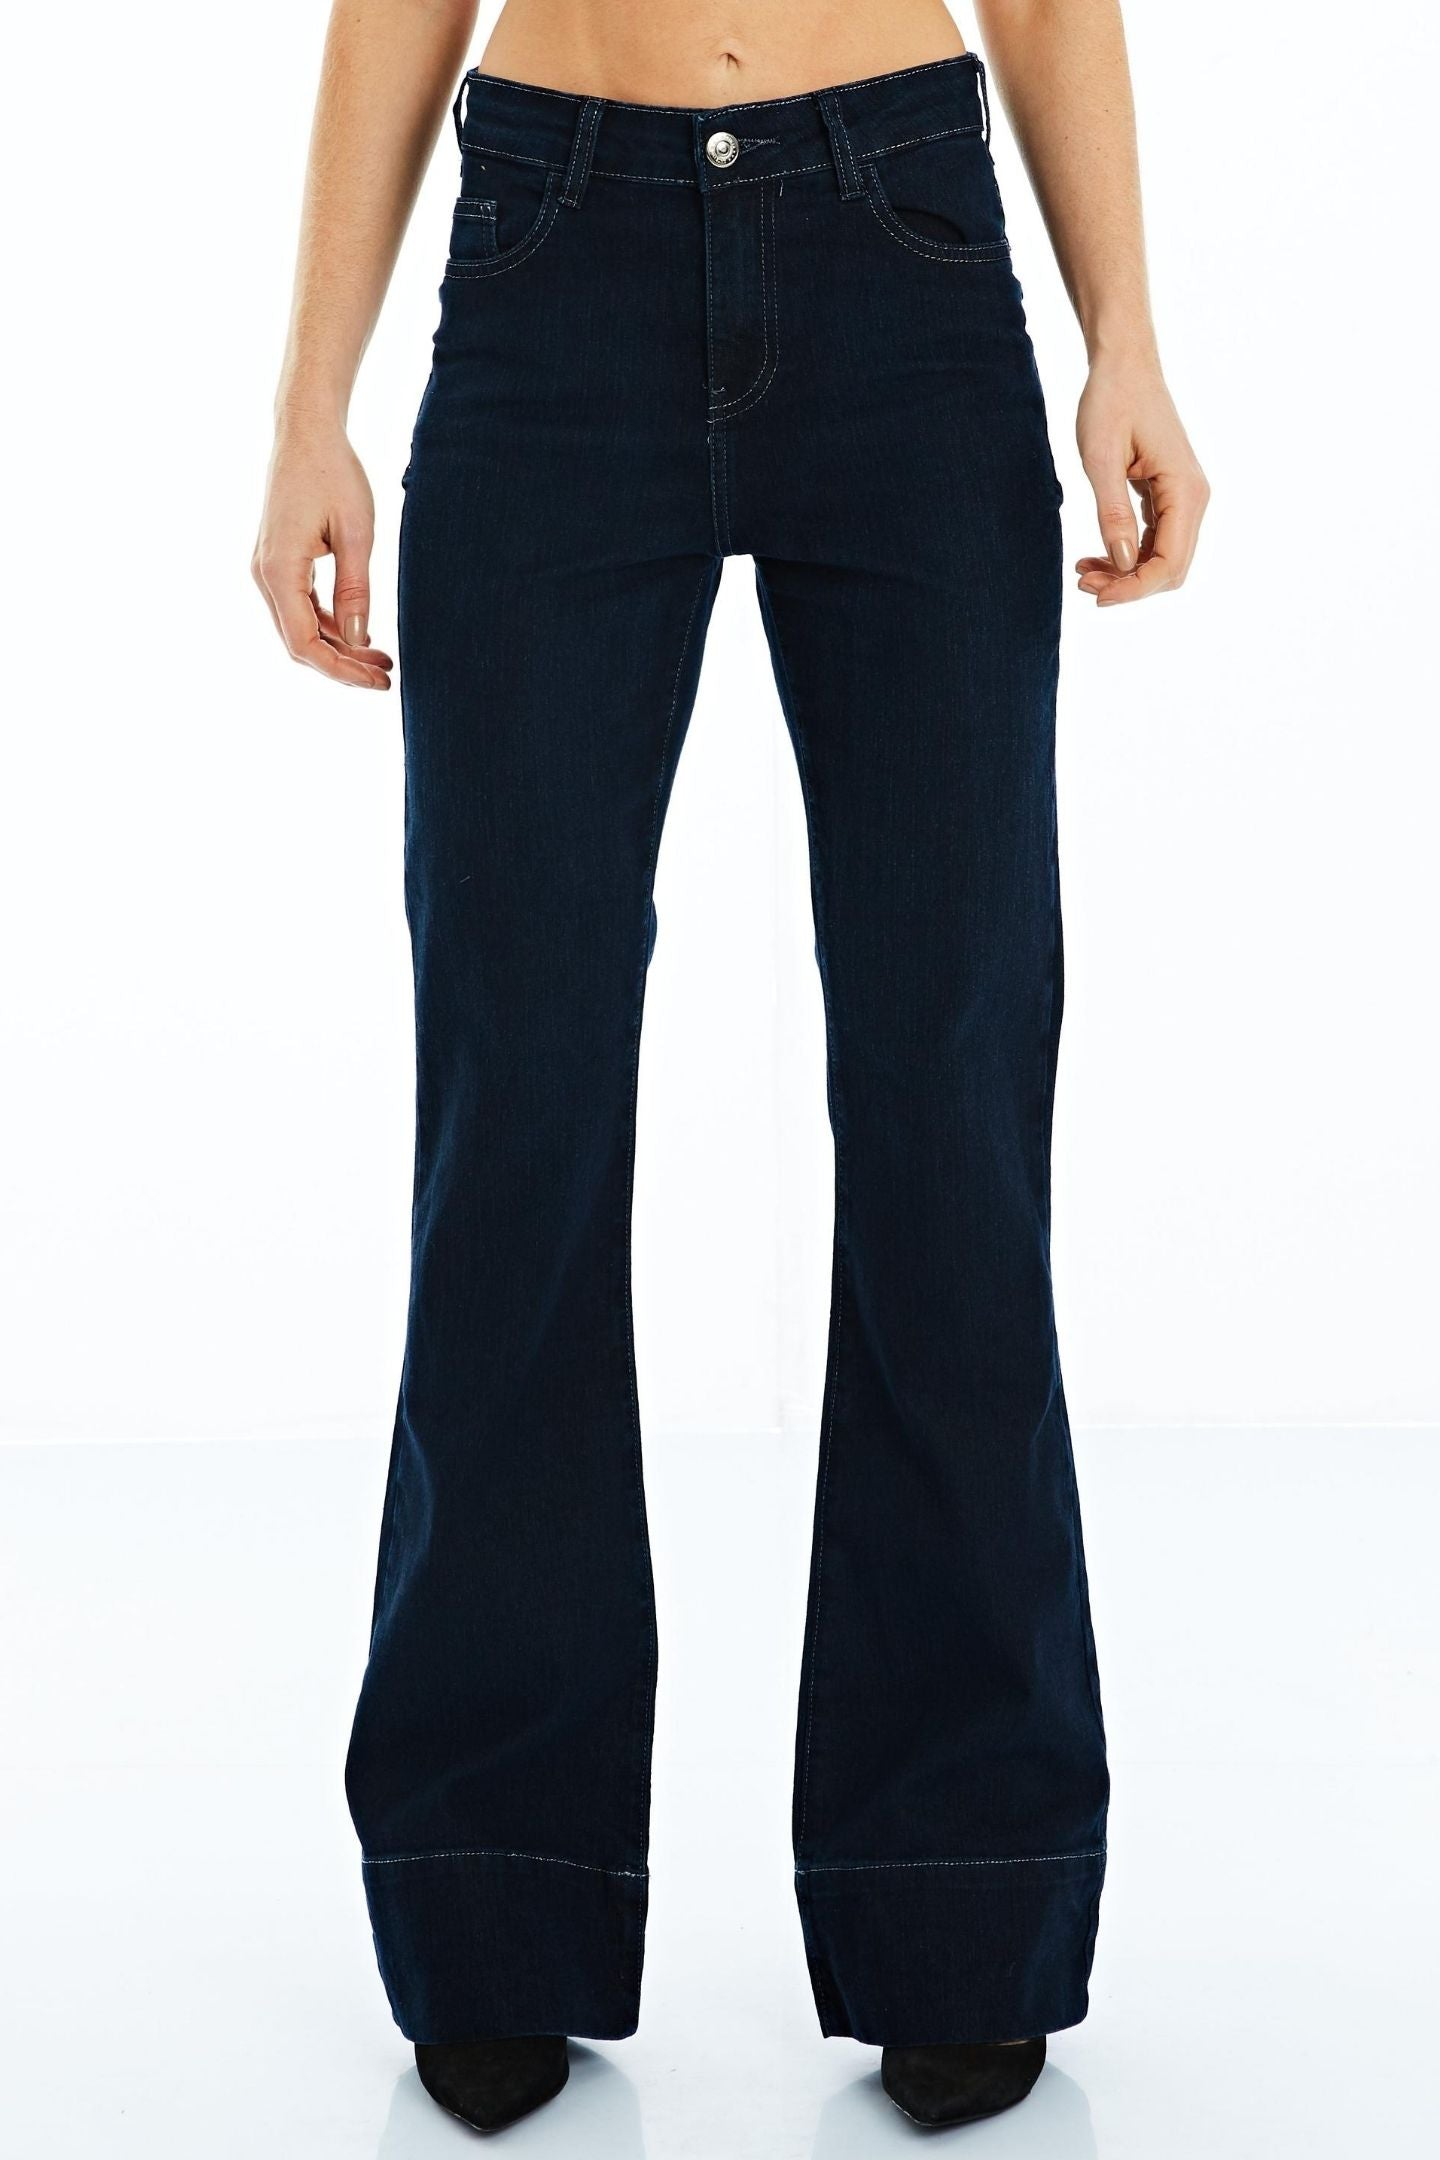 CALÇA JEANS BOOT CUT C3 DARK BLUE